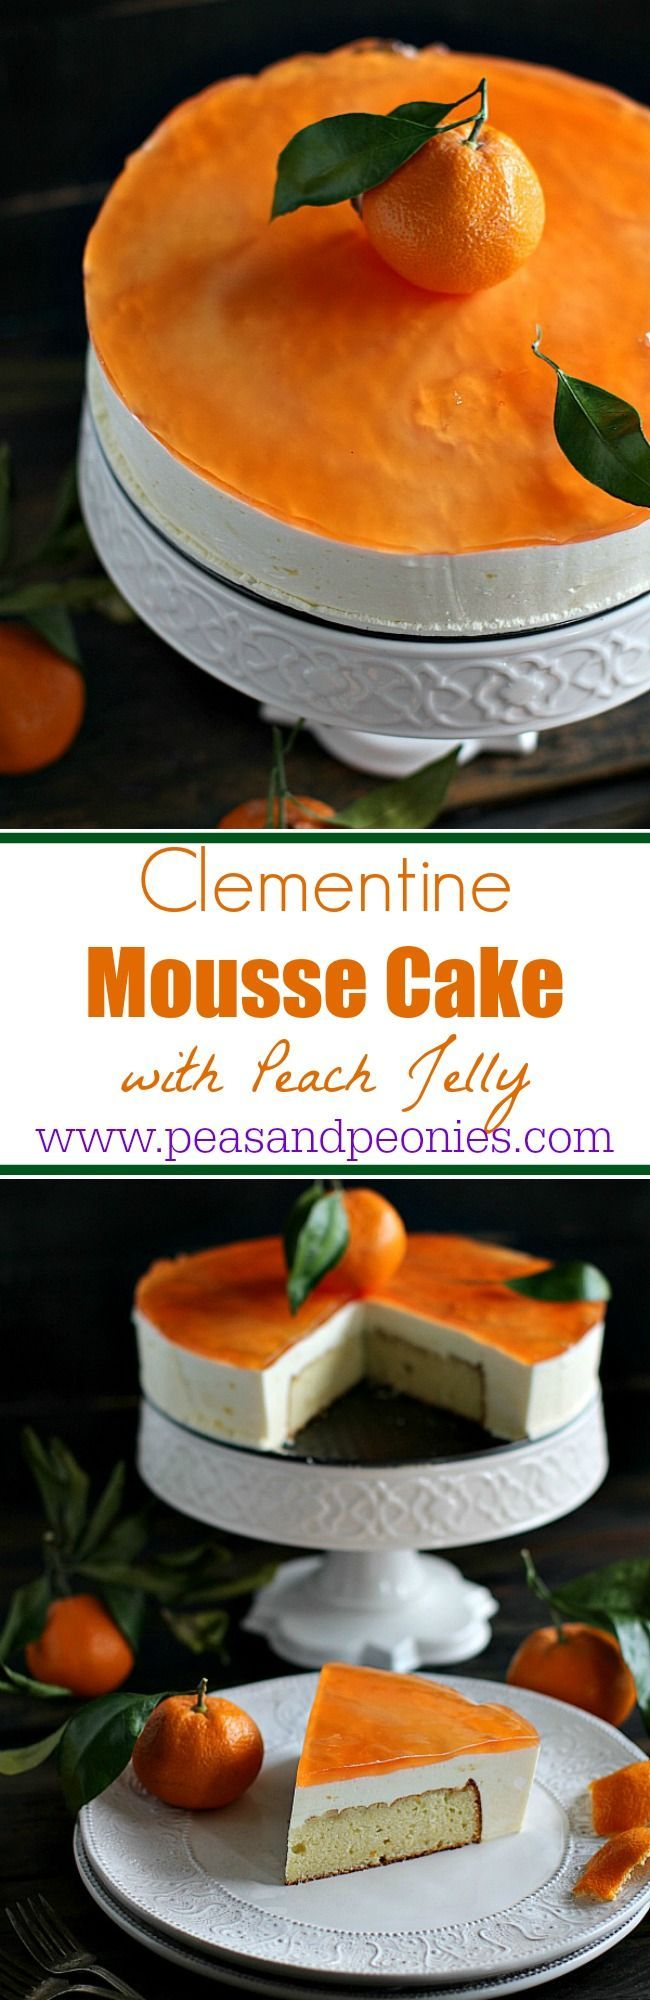 ... Creamy And Aromatic Clementine Mousse Cake Over Delicious Yellow Cake  And Topped With Sweet And Flavorful Peach Jelly   Peas And Peonies By Vicki